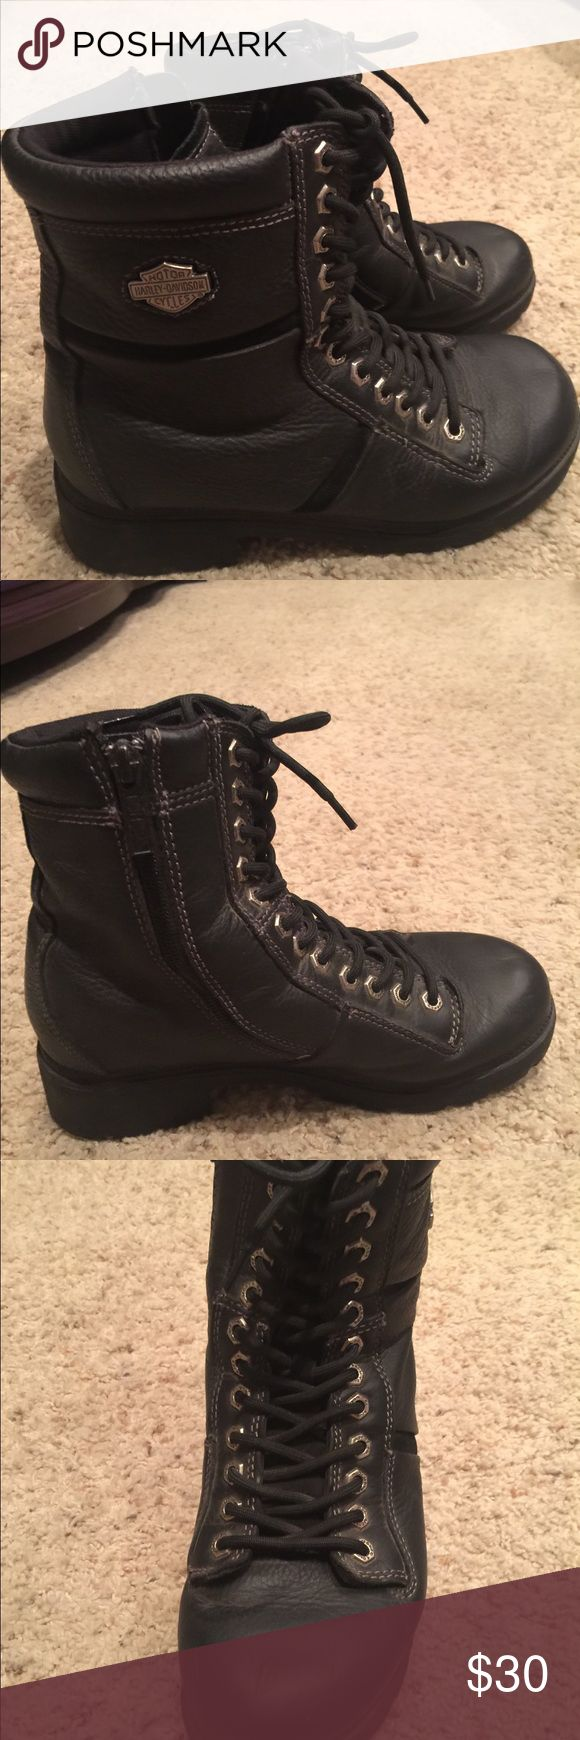 Harley Davidson Ladies Riding Boots 8-1/2 Black leather Harley Davidson ladies riding boots.  Gently used, in great condition. Harley-Davidson Shoes Combat & Moto Boots